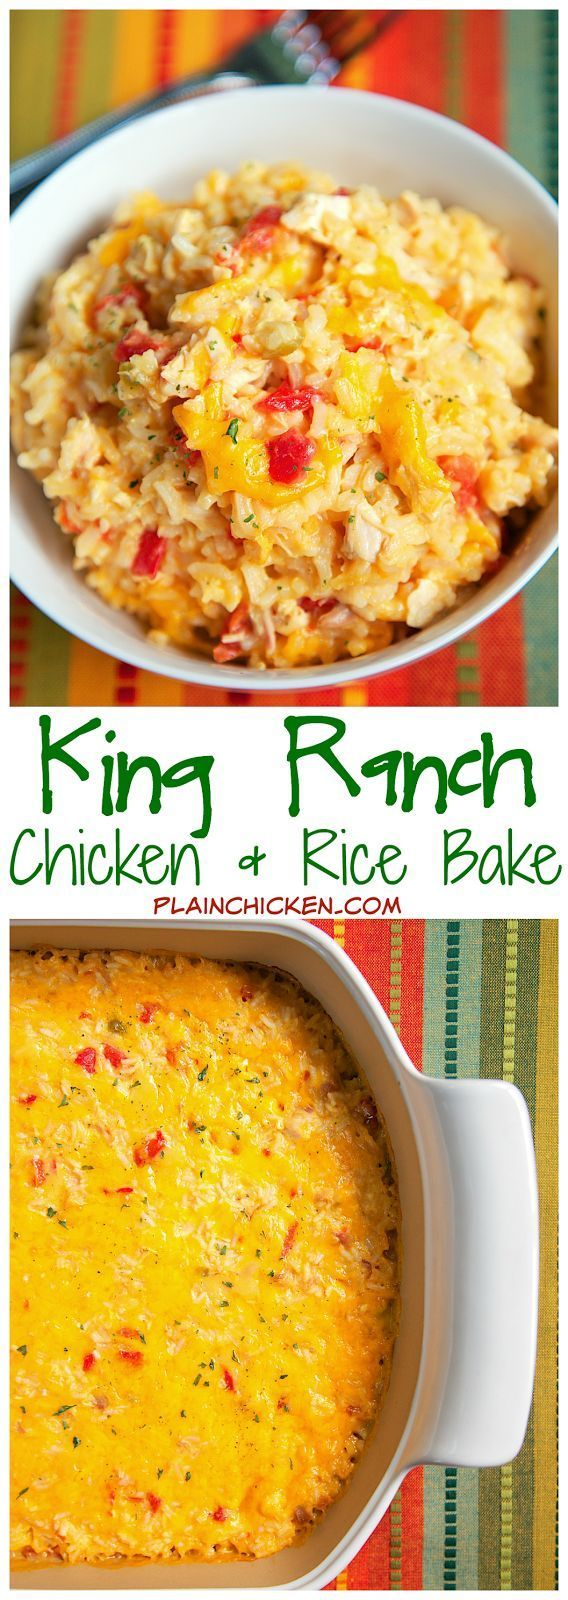 King Ranch Chicken and Rice Bake Recipe - chicken, rice, chicken soup, R-otel, Velveeta - SO good! Ready in under 30 minutes. I wanted to eat the entire pan myself!